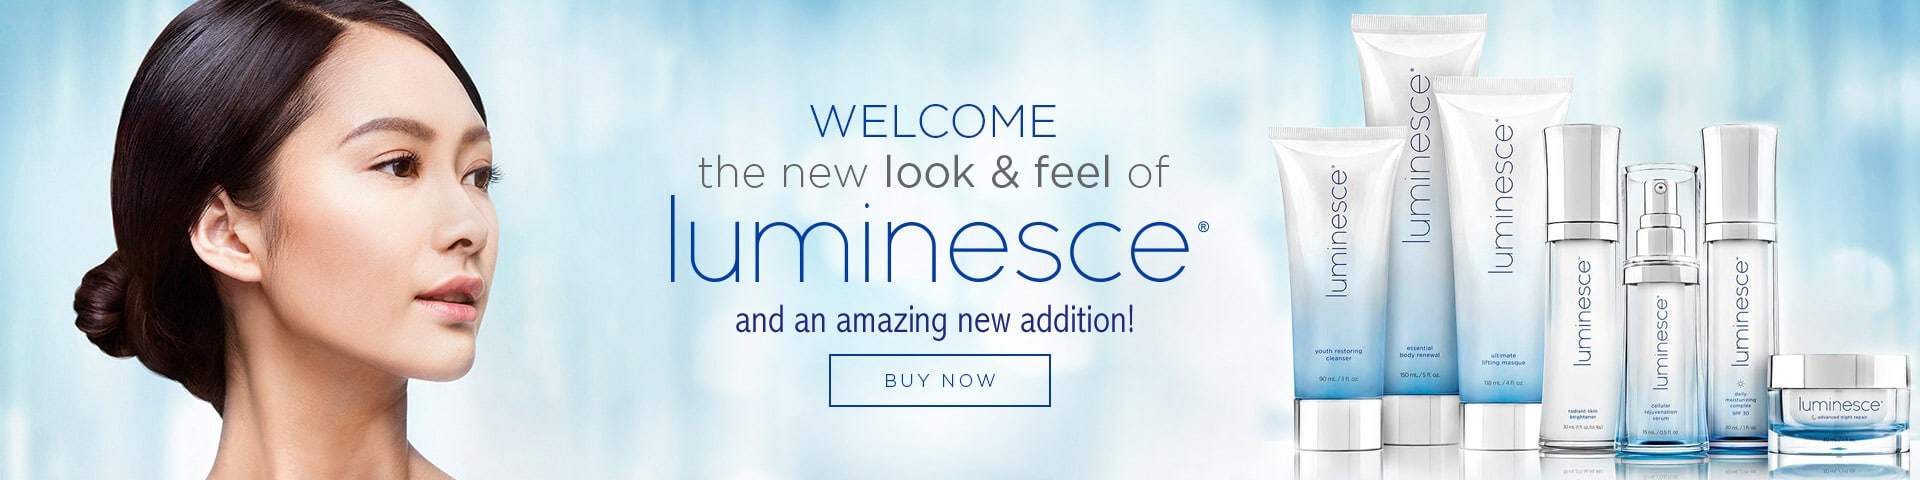 Luminesce Skin Care by Jeunesse